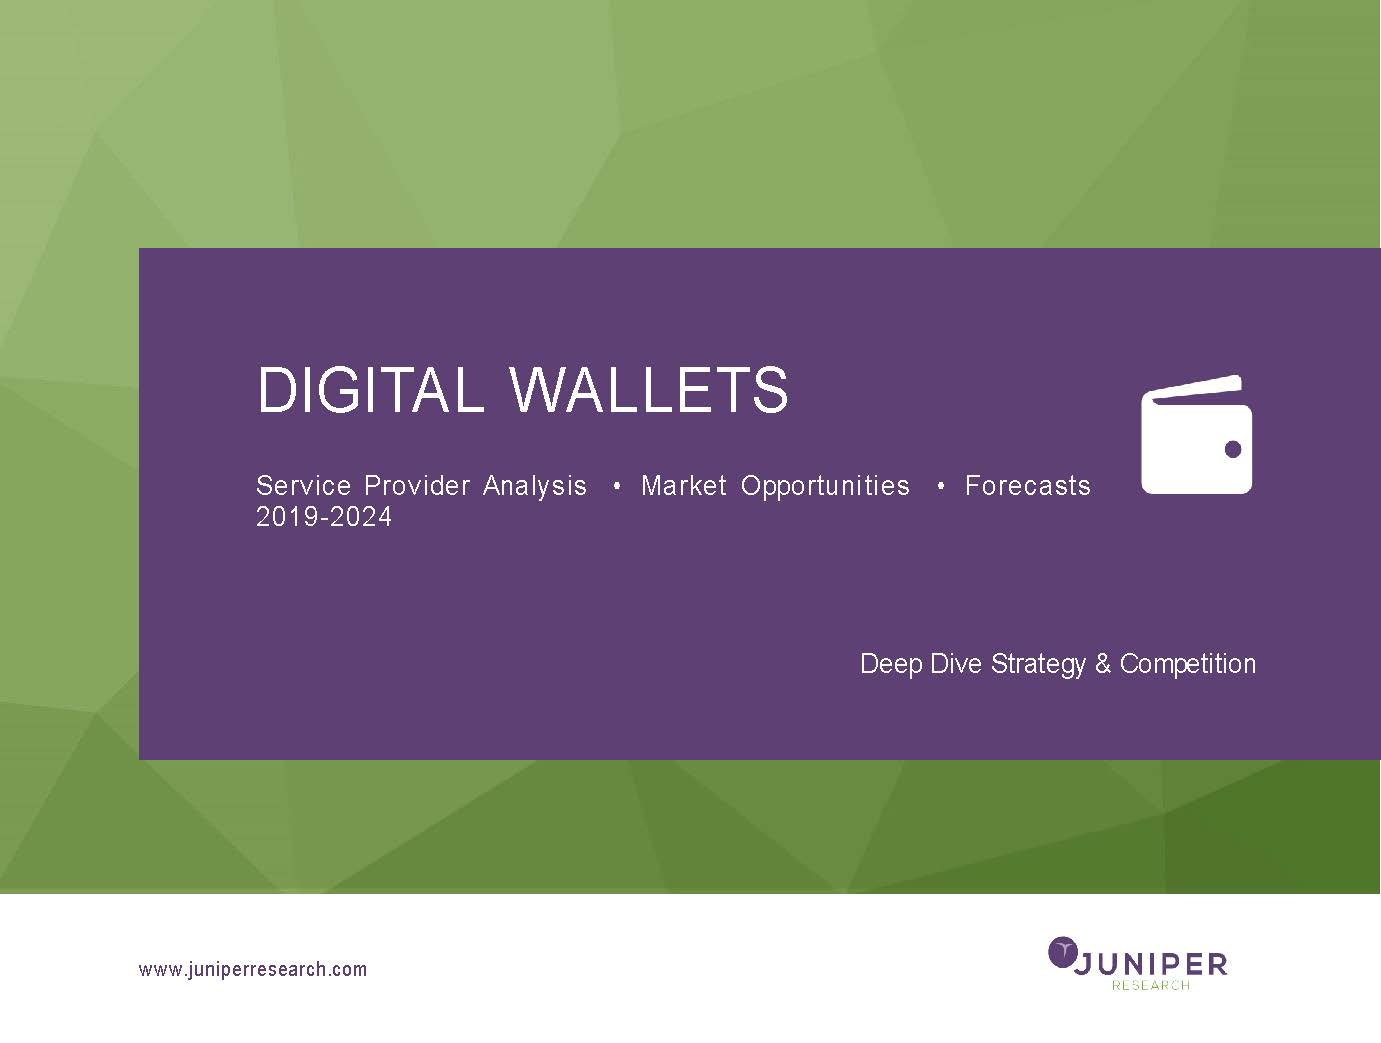 Digital Wallets - Deep Dive Strategy & Competition 2019-2024